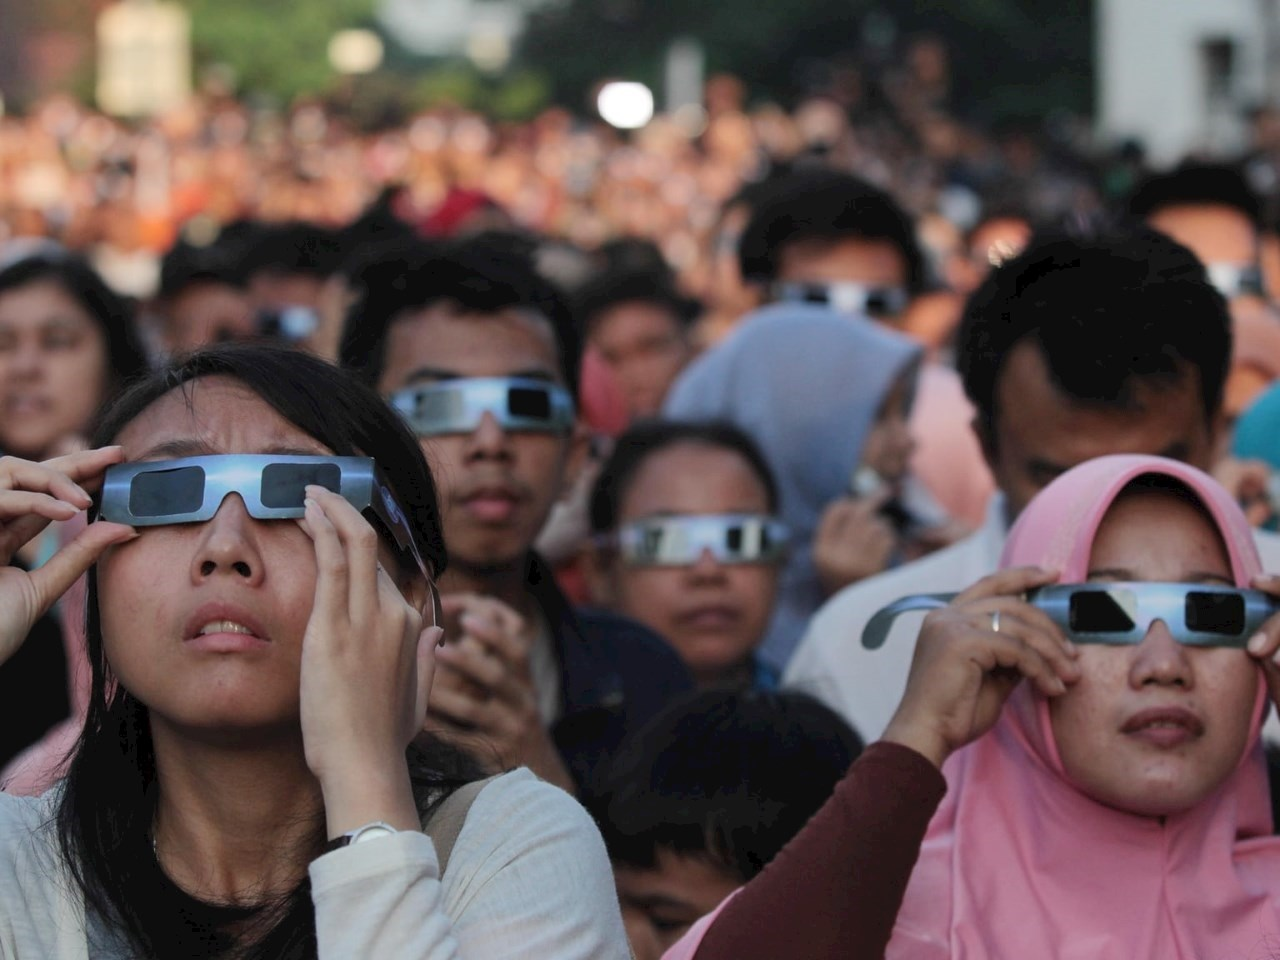 Always use eclipse glasses